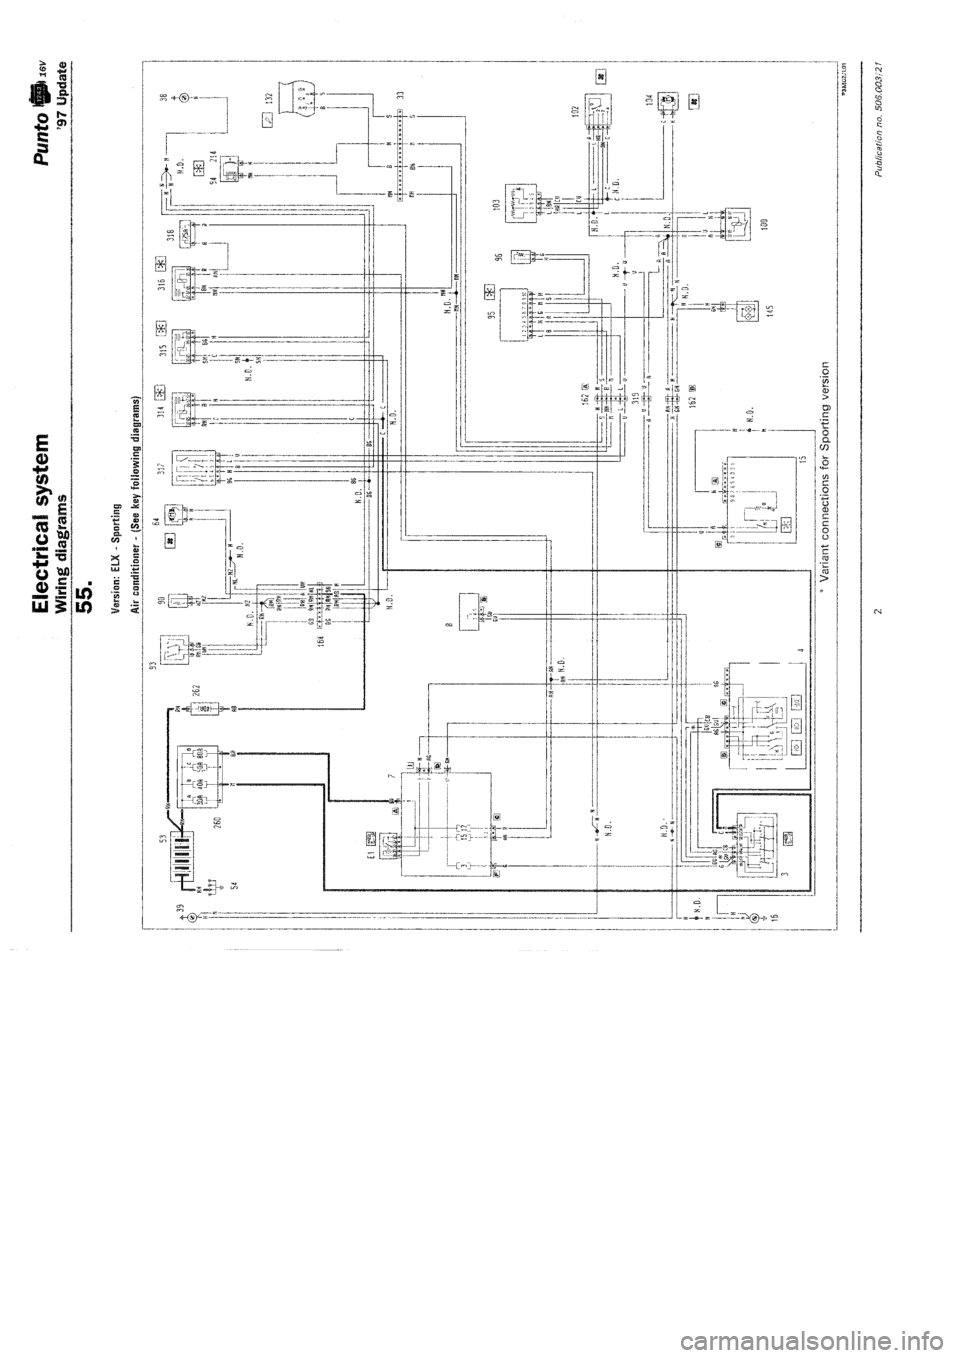 hight resolution of fiat doblo central locking wiring diagram wiring diagram fiat punto 55 wiring diagram